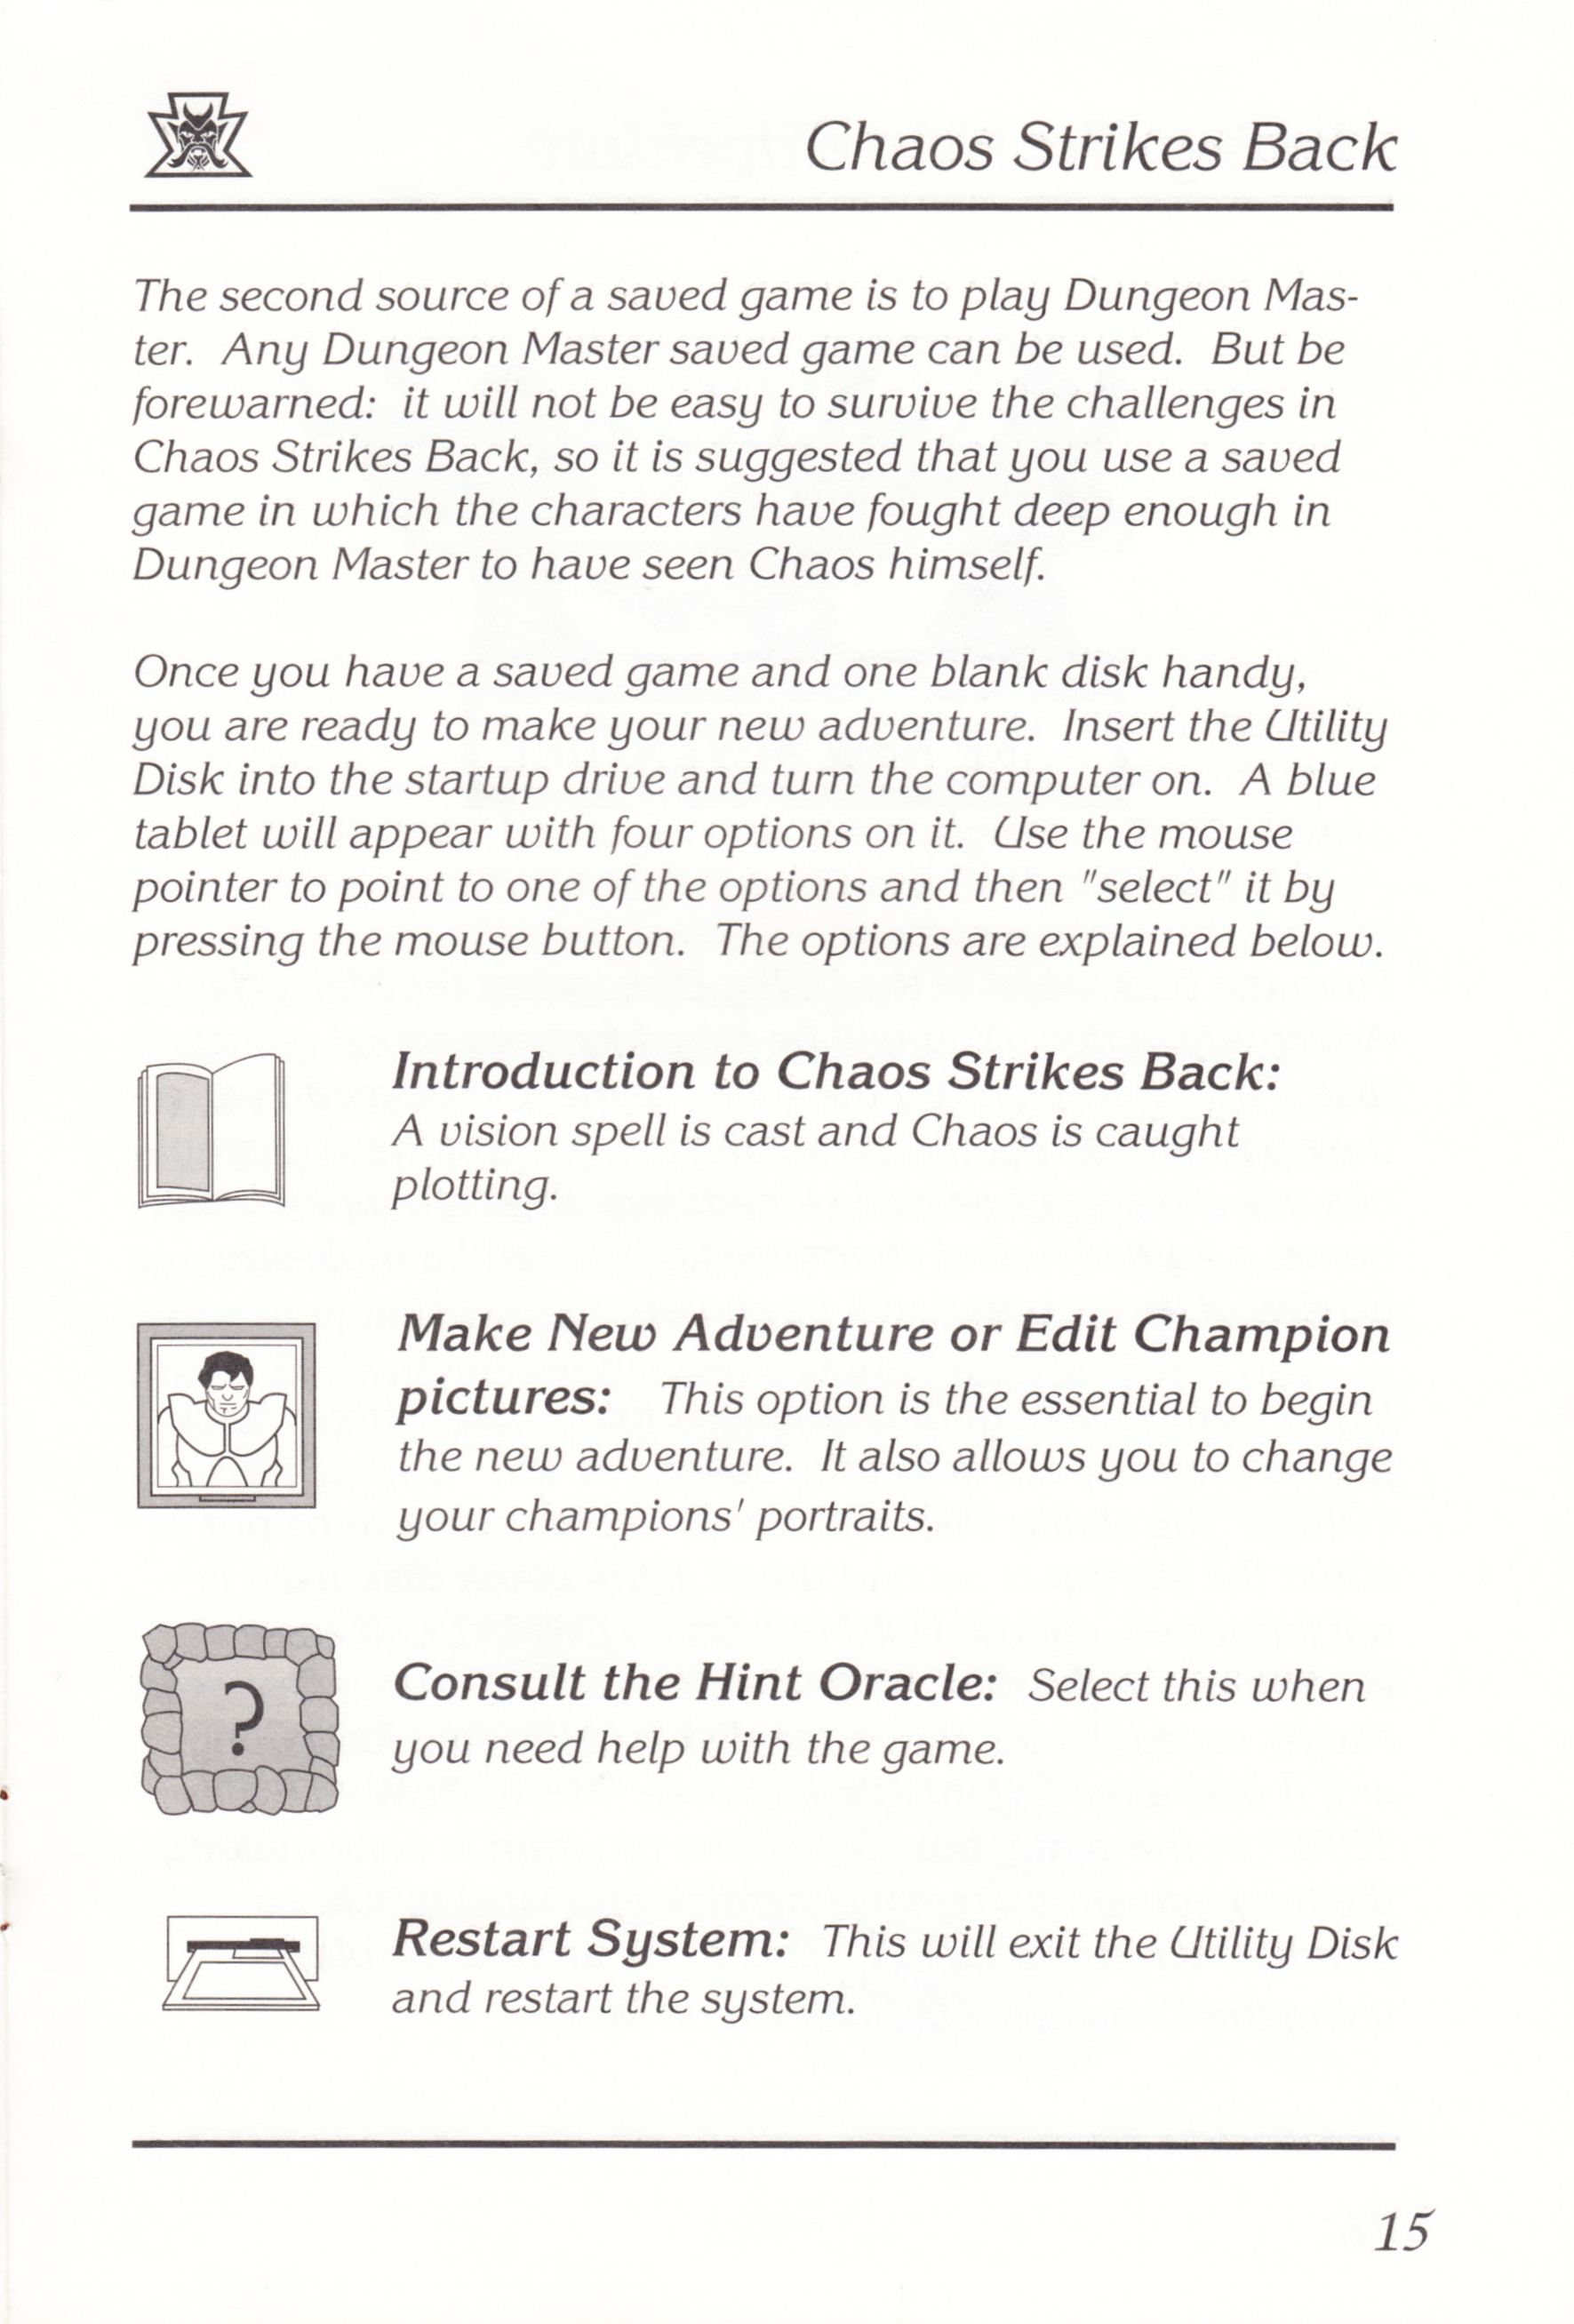 Game - Chaos Strikes Back - UK - Atari ST - Manual - Page 017 - Scan